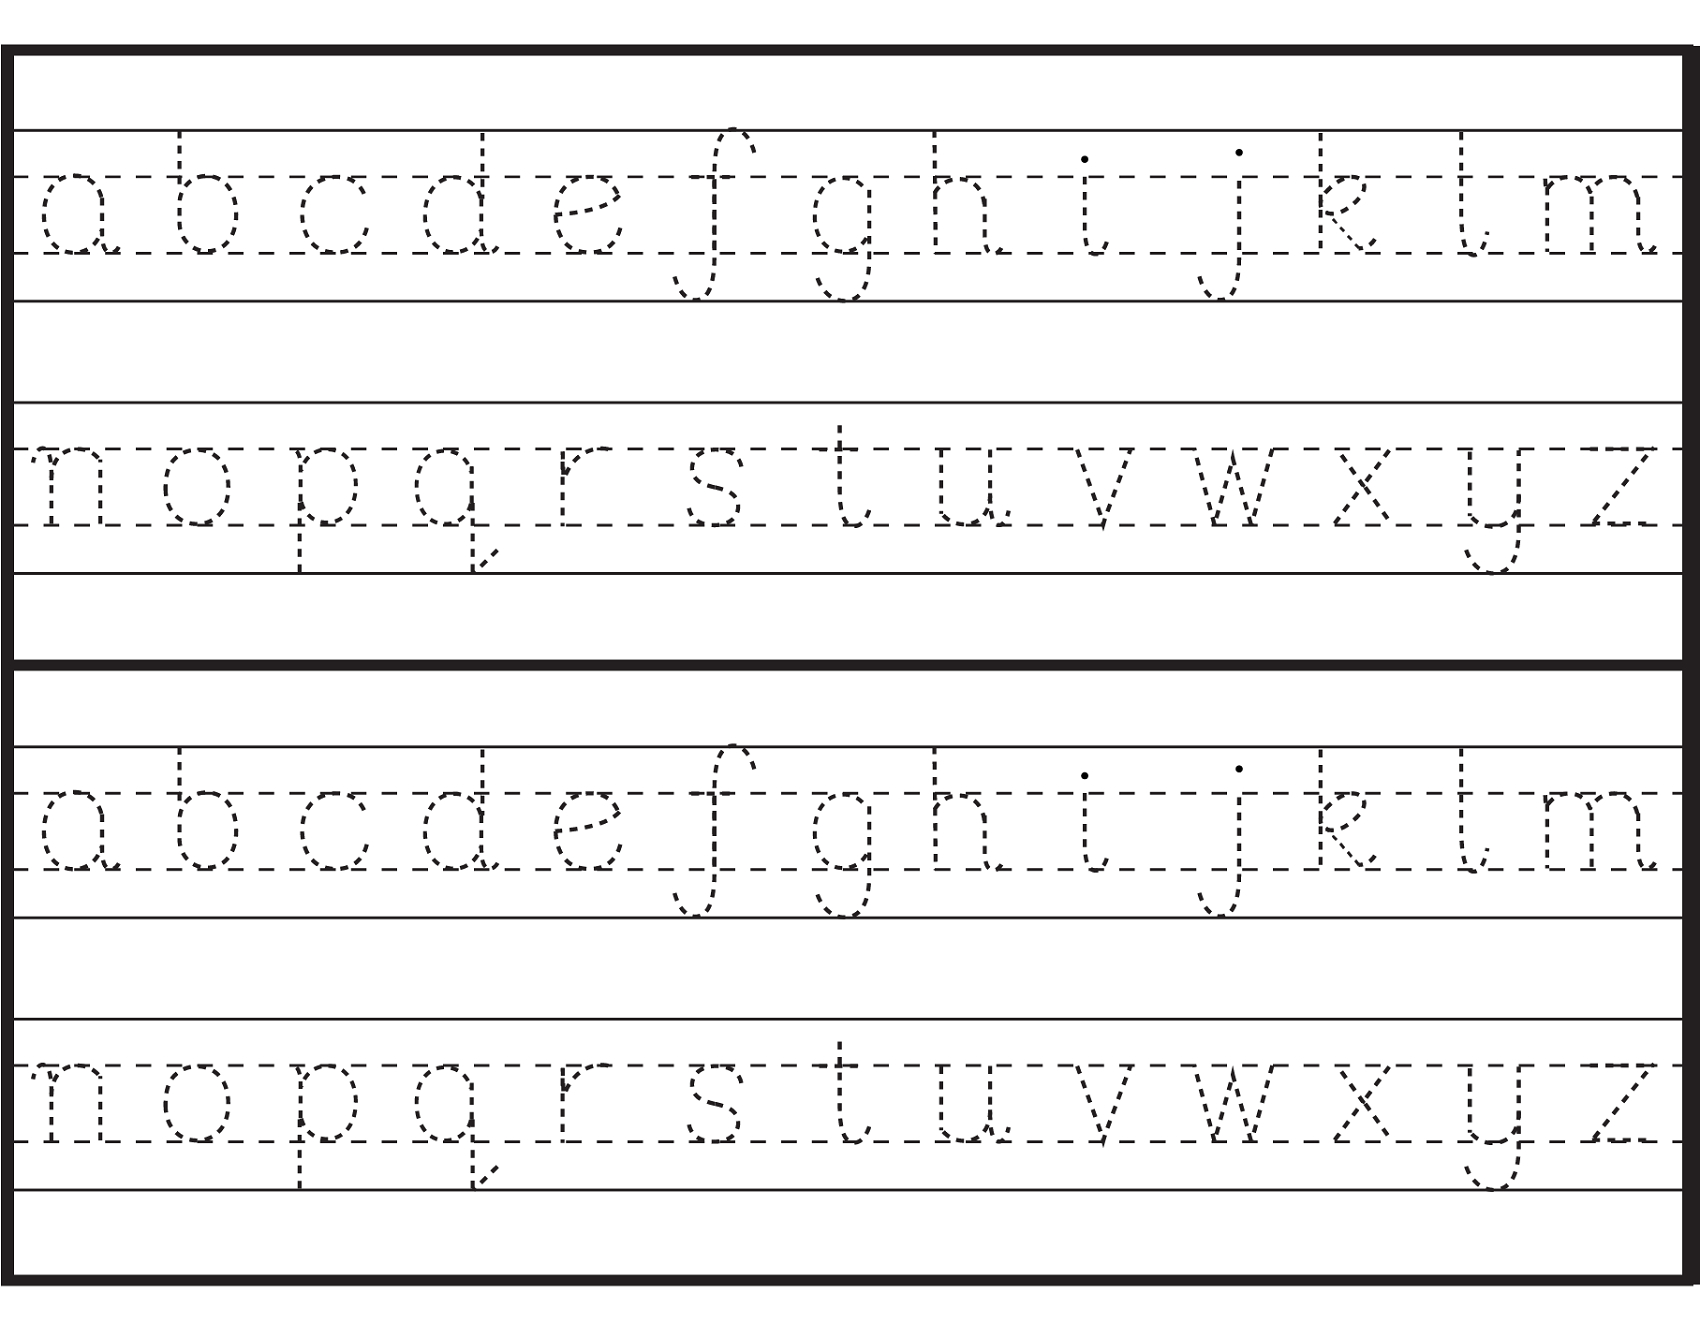 Letter Tracing Sheets Printable | Activity Shelter intended for Alphabet Tracing Sheets Printable